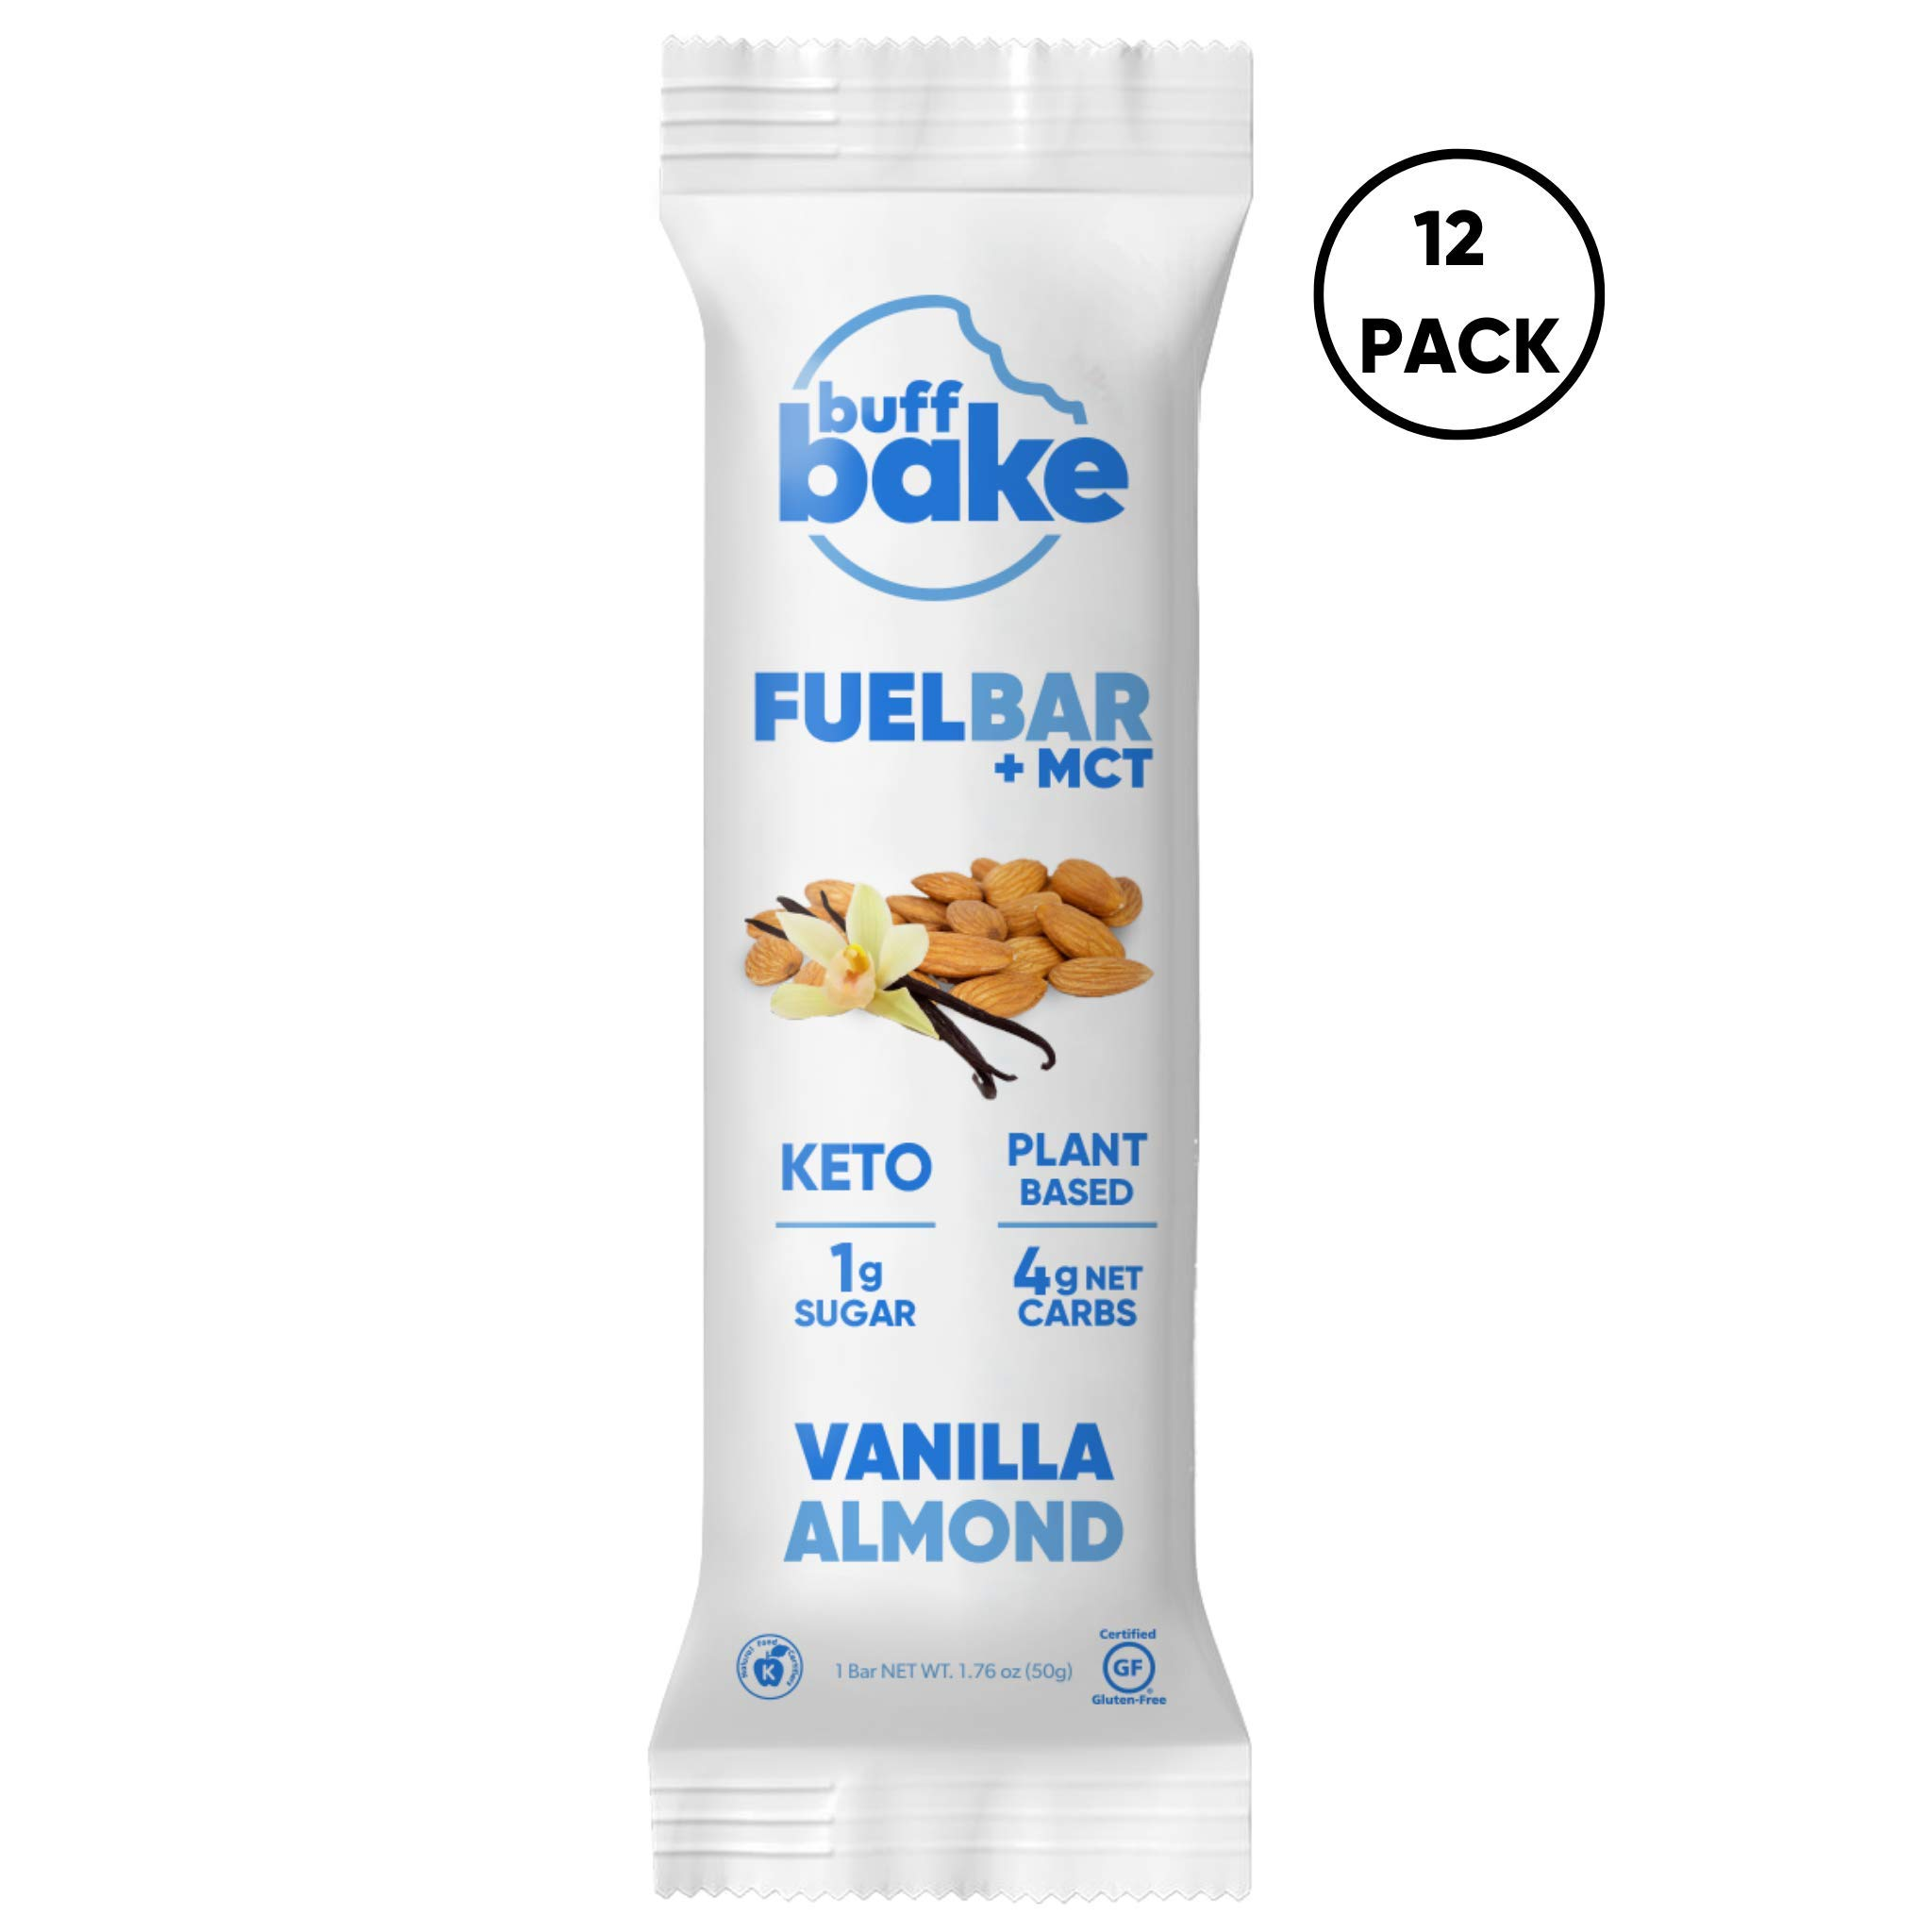 Buff Bake Keto Fuel Bar + MCT Oil - Ketogenic | Plant Based | Gluten Free | 12g of Protein | 1 Gram Sugar | 4 Gram Net Carbs | (12 Count, 50g) (Vanilla Almond, 12 Count) by Buff Bake